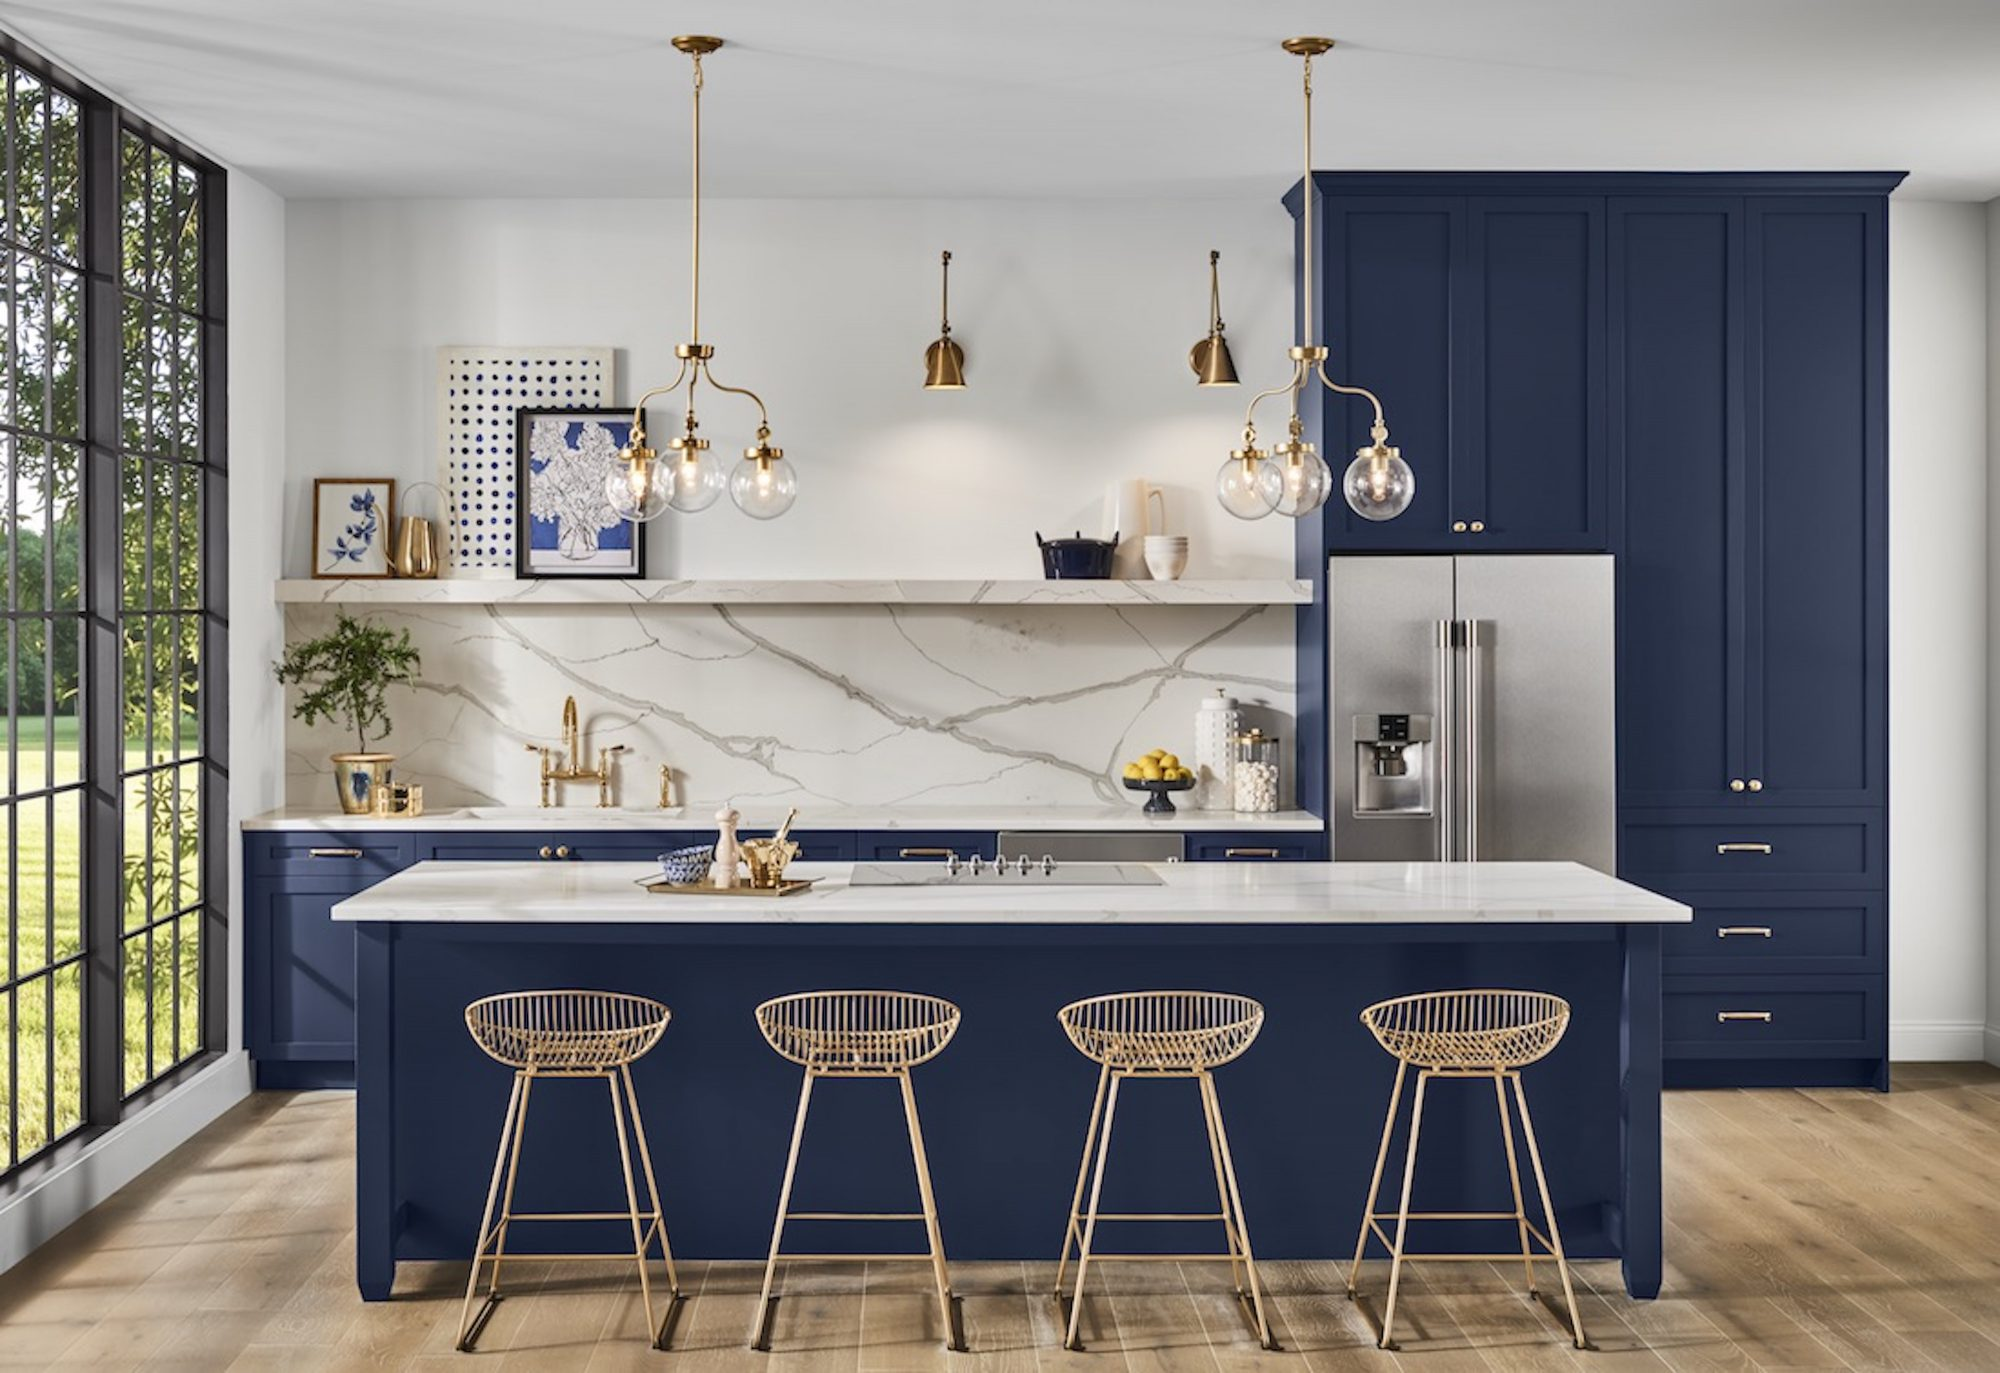 7 Paint Colors Weire Loving For Kitchen Cabinets In 2020